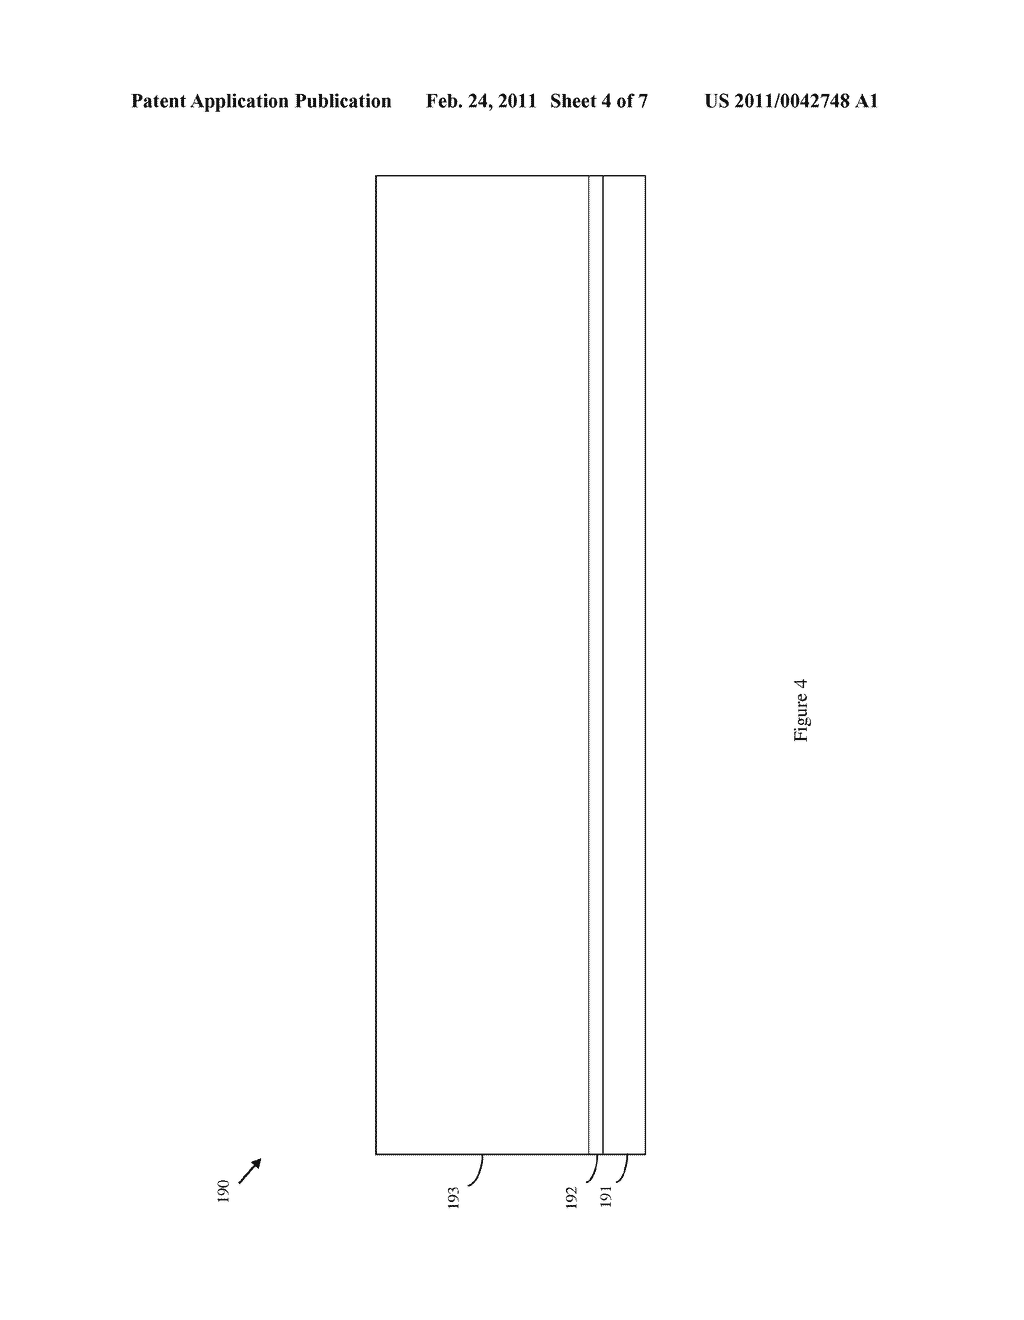 MULTI-GATE NON-PLANAR FIELD EFFECT TRANSISTOR STRUCTURE AND METHOD OF FORMING THE STRUCTURE USING A DOPANT IMPLANT PROCESS TO TUNE DEVICE DRIVE CURRENT - diagram, schematic, and image 05